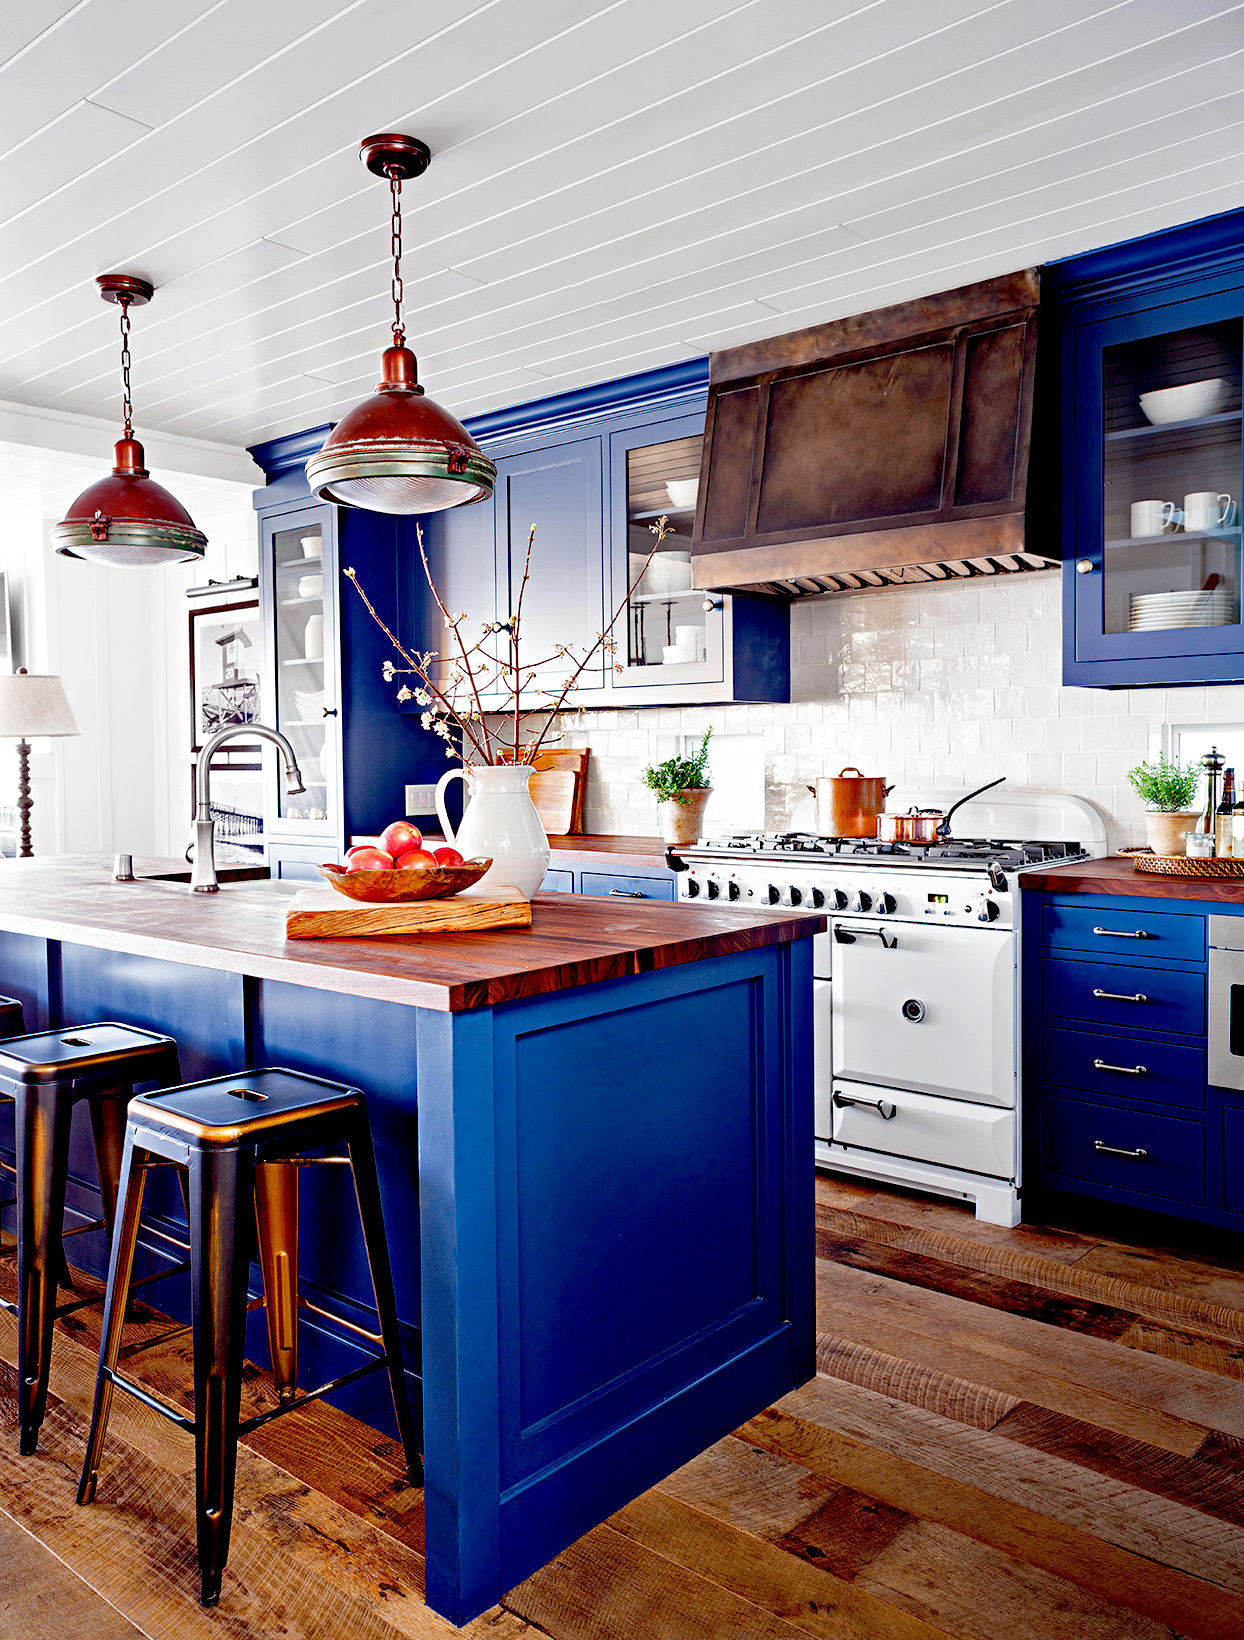 Kitchen with blue cabinets and island with seating